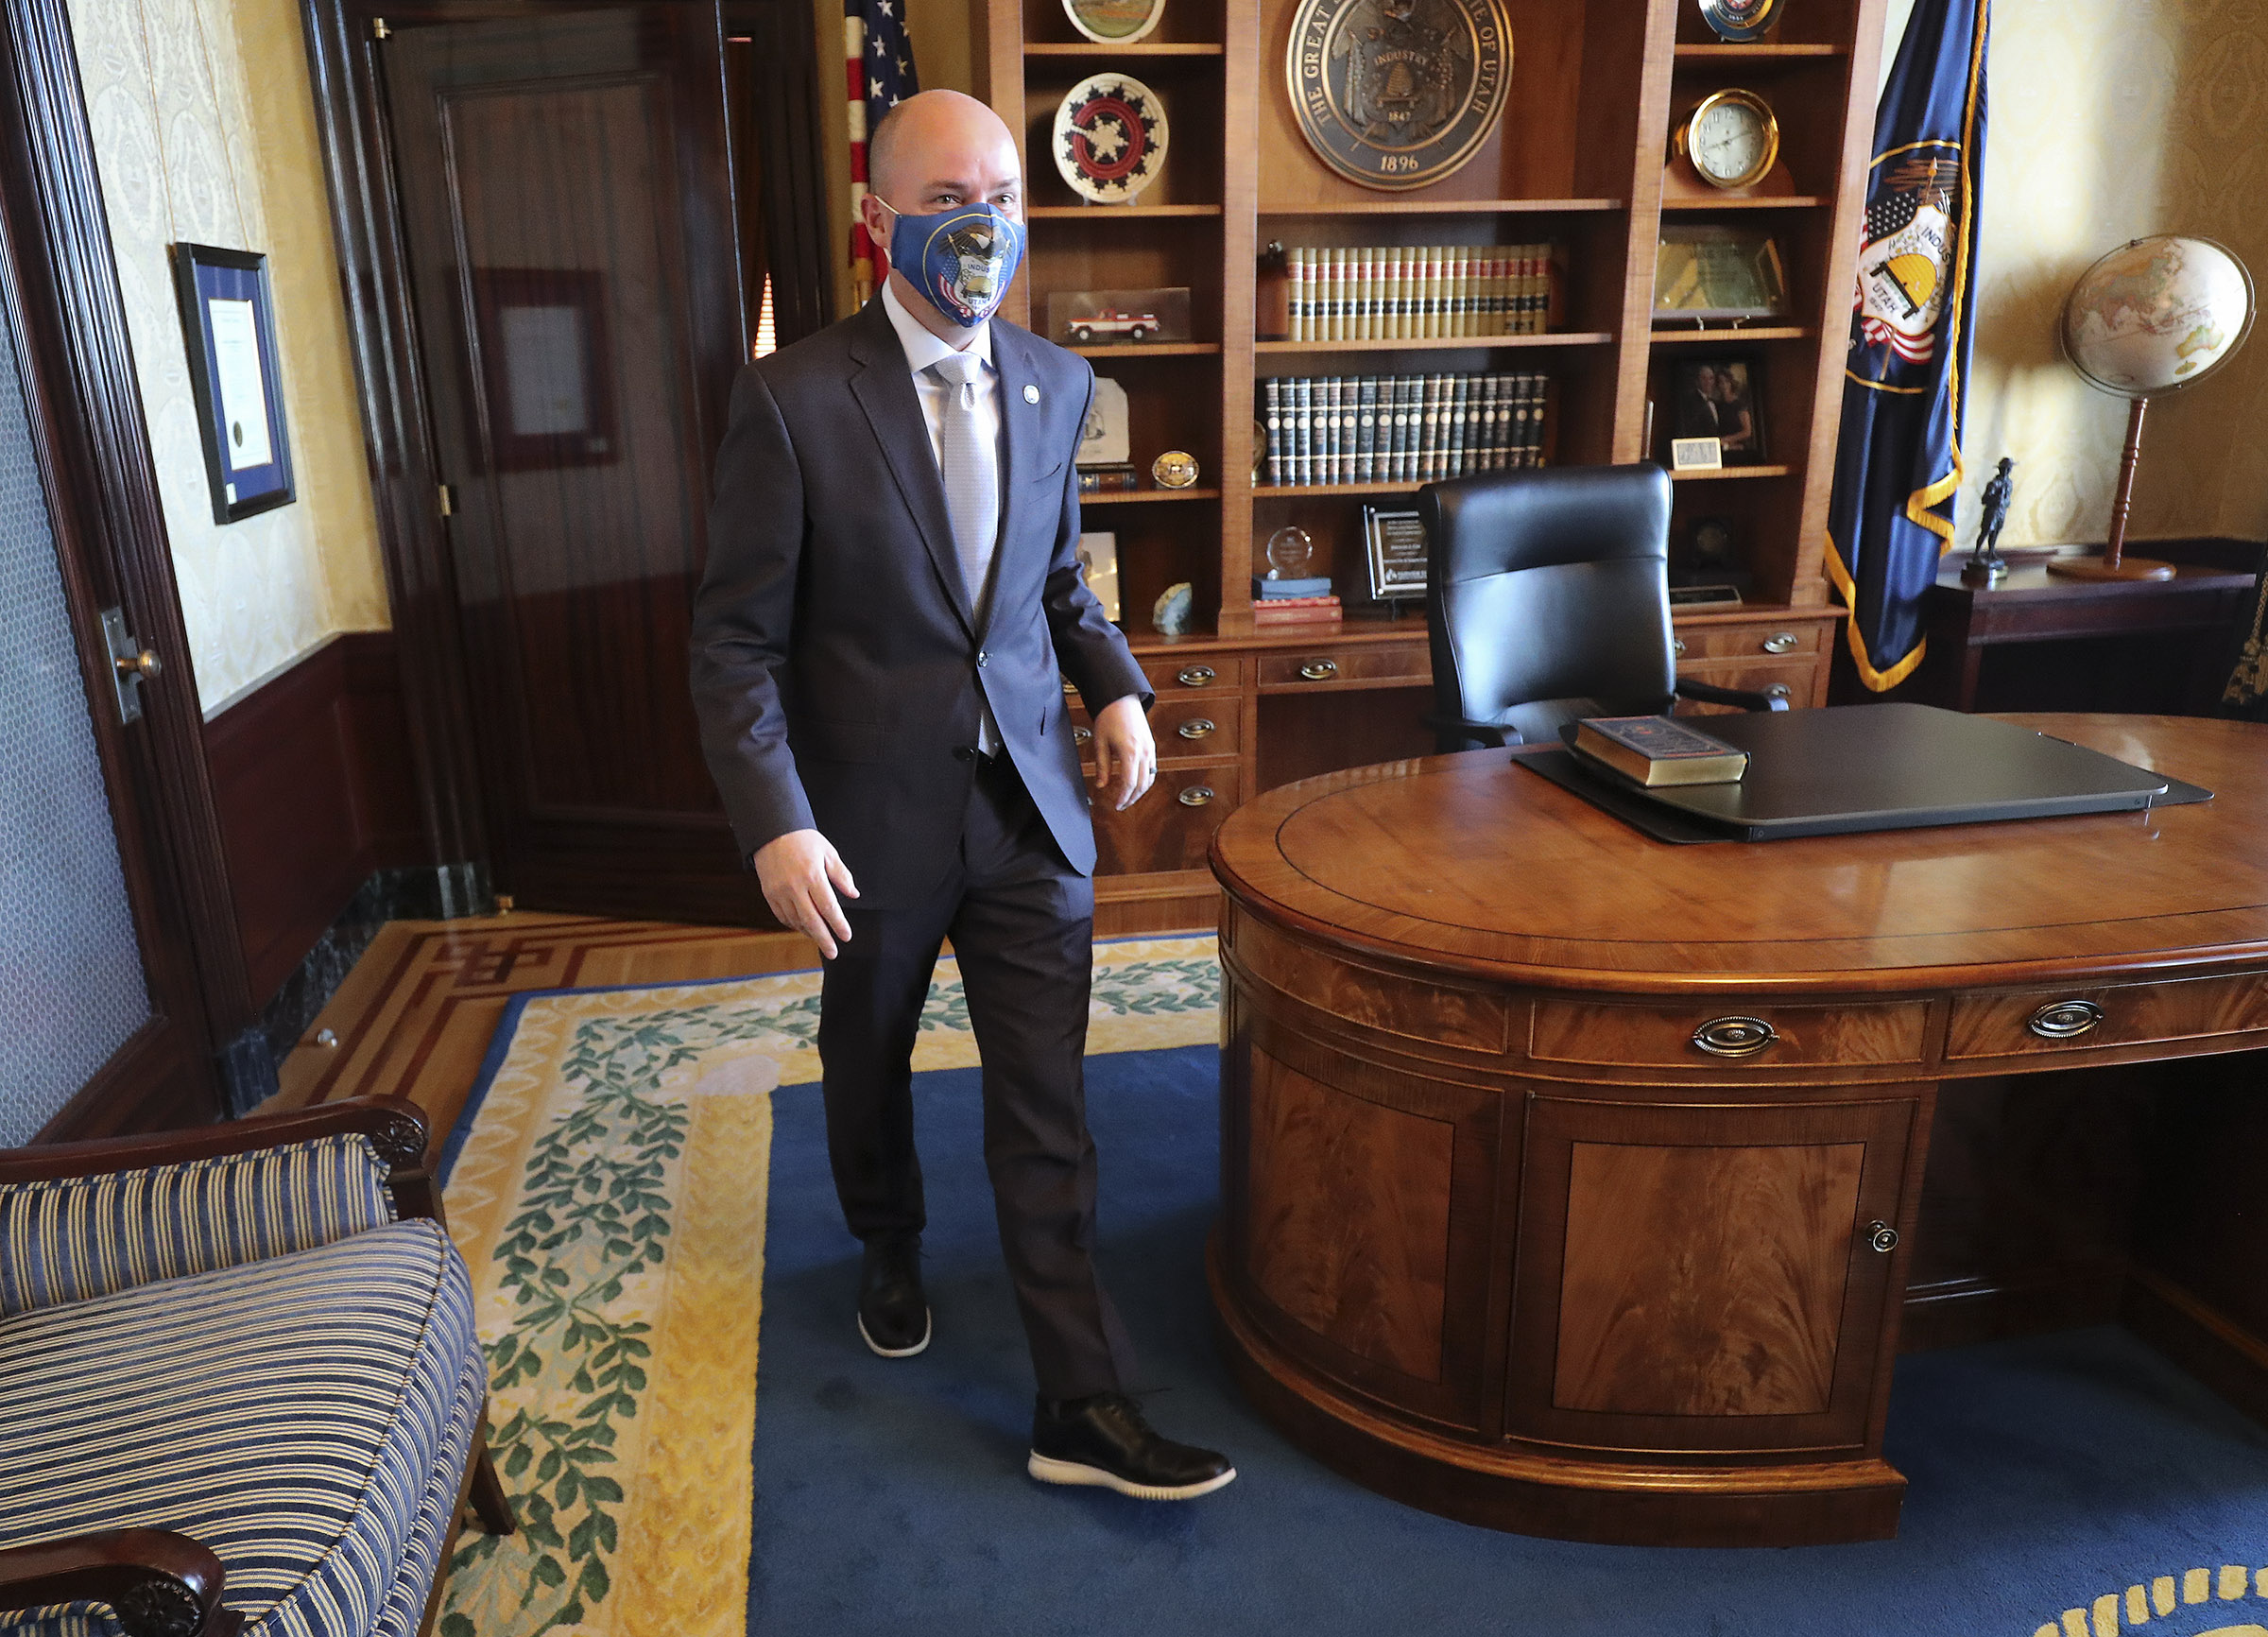 Gov. Spencer Cox walks through his office at the Capitol in Salt Lake City on Tuesday, Jan. 5, 2021.